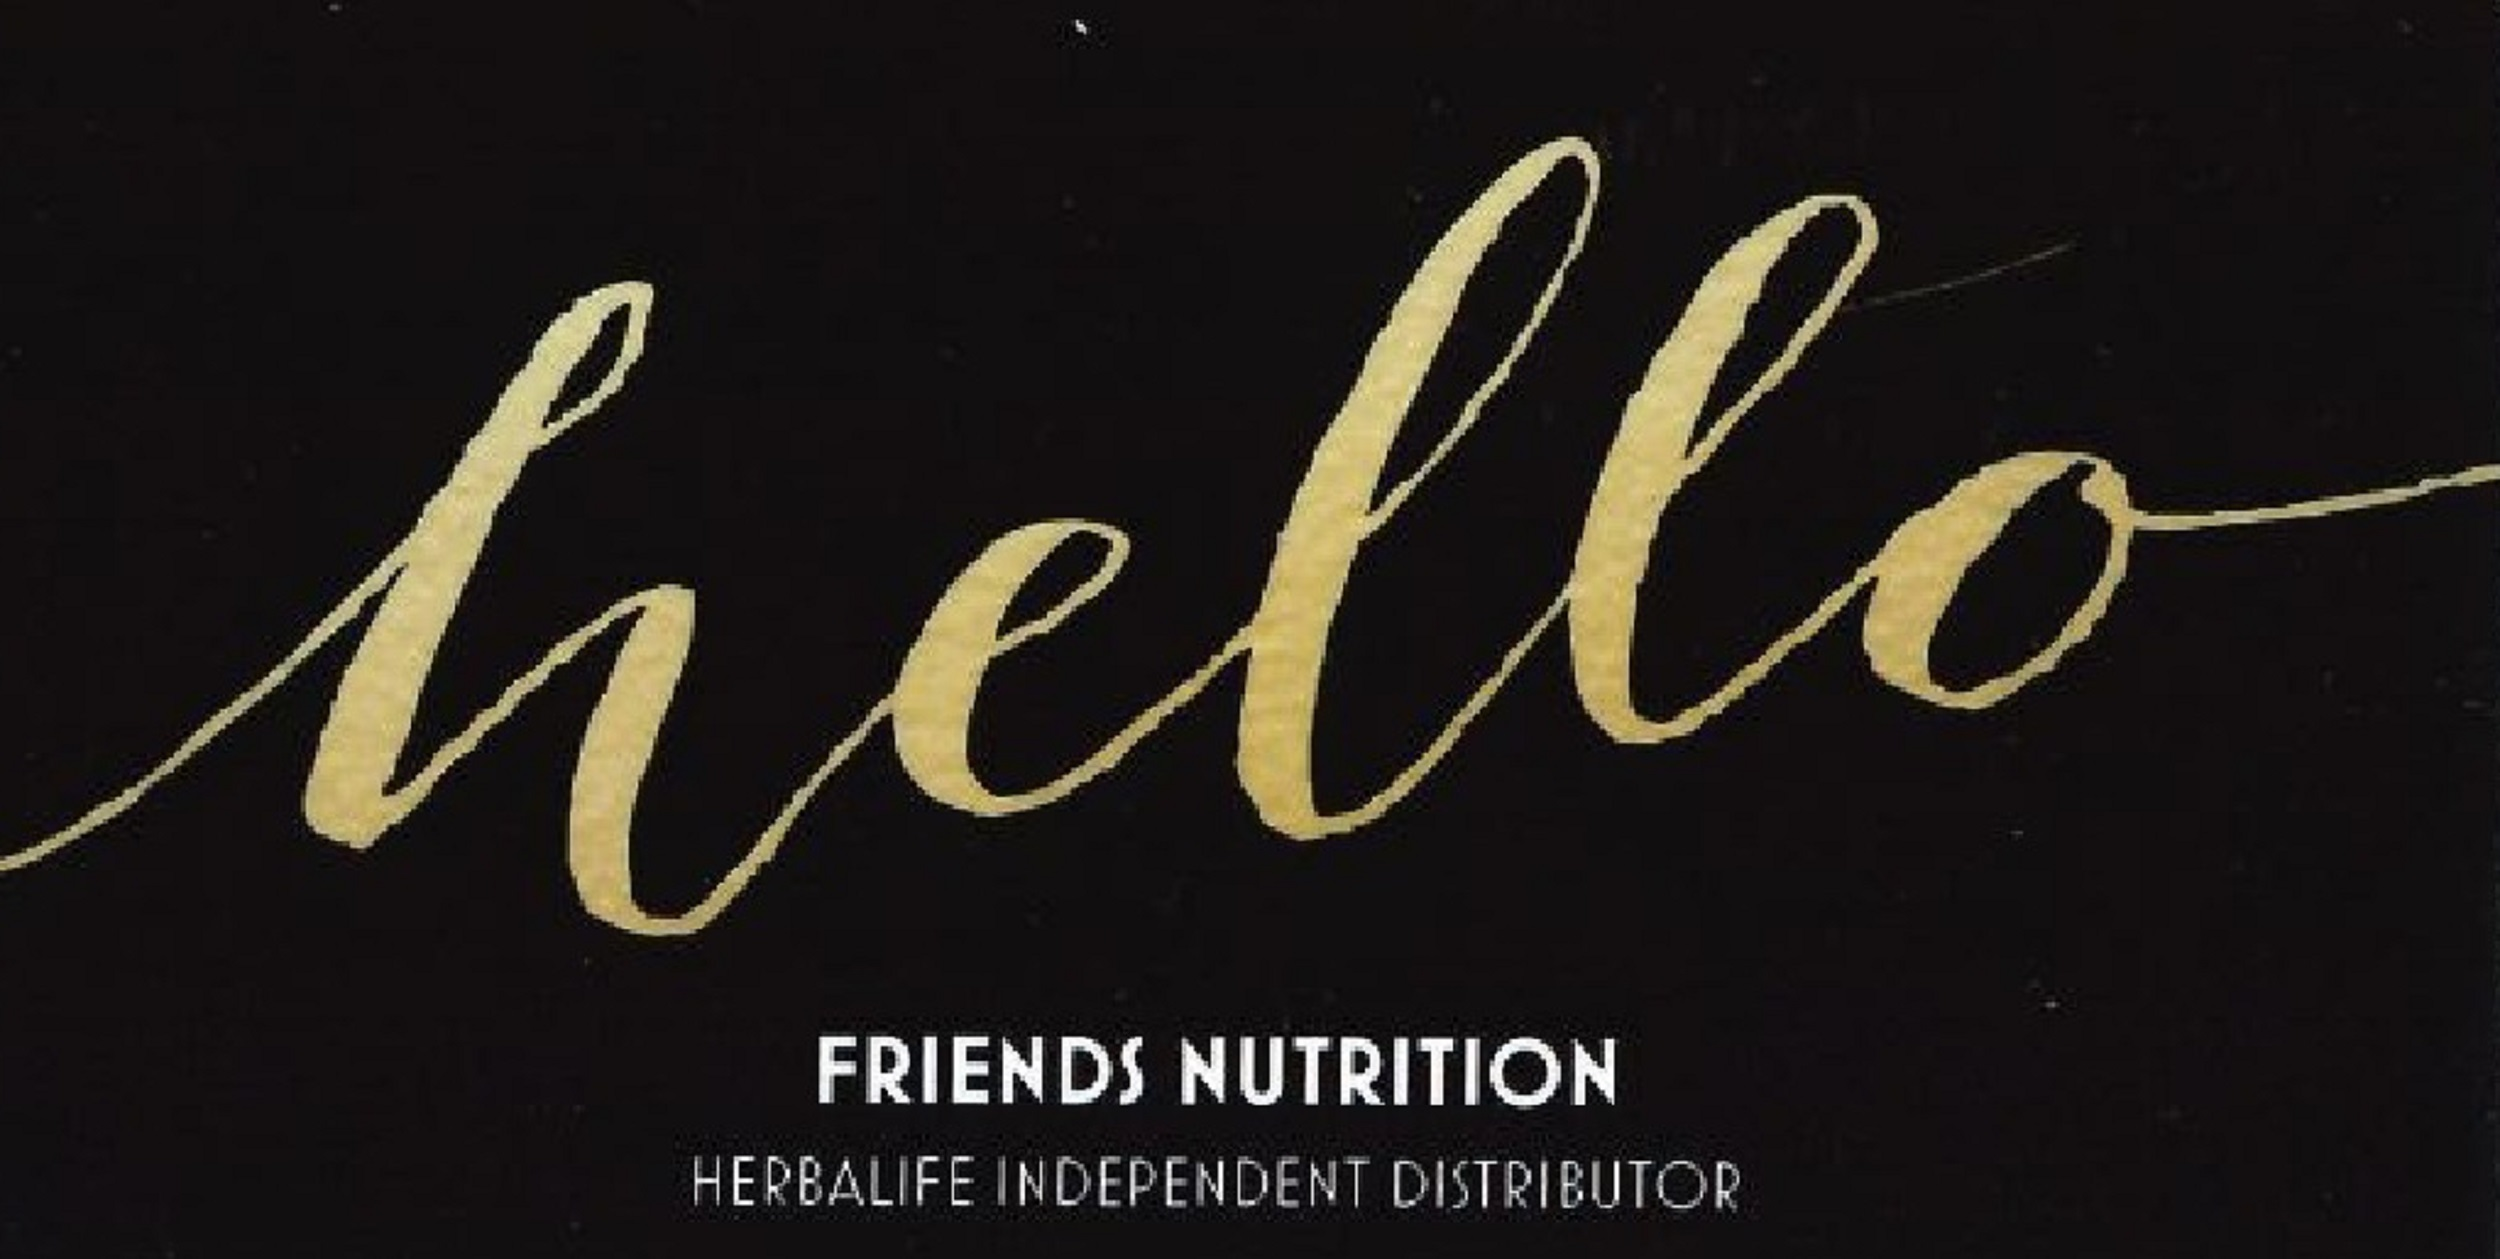 Friends Nutrition